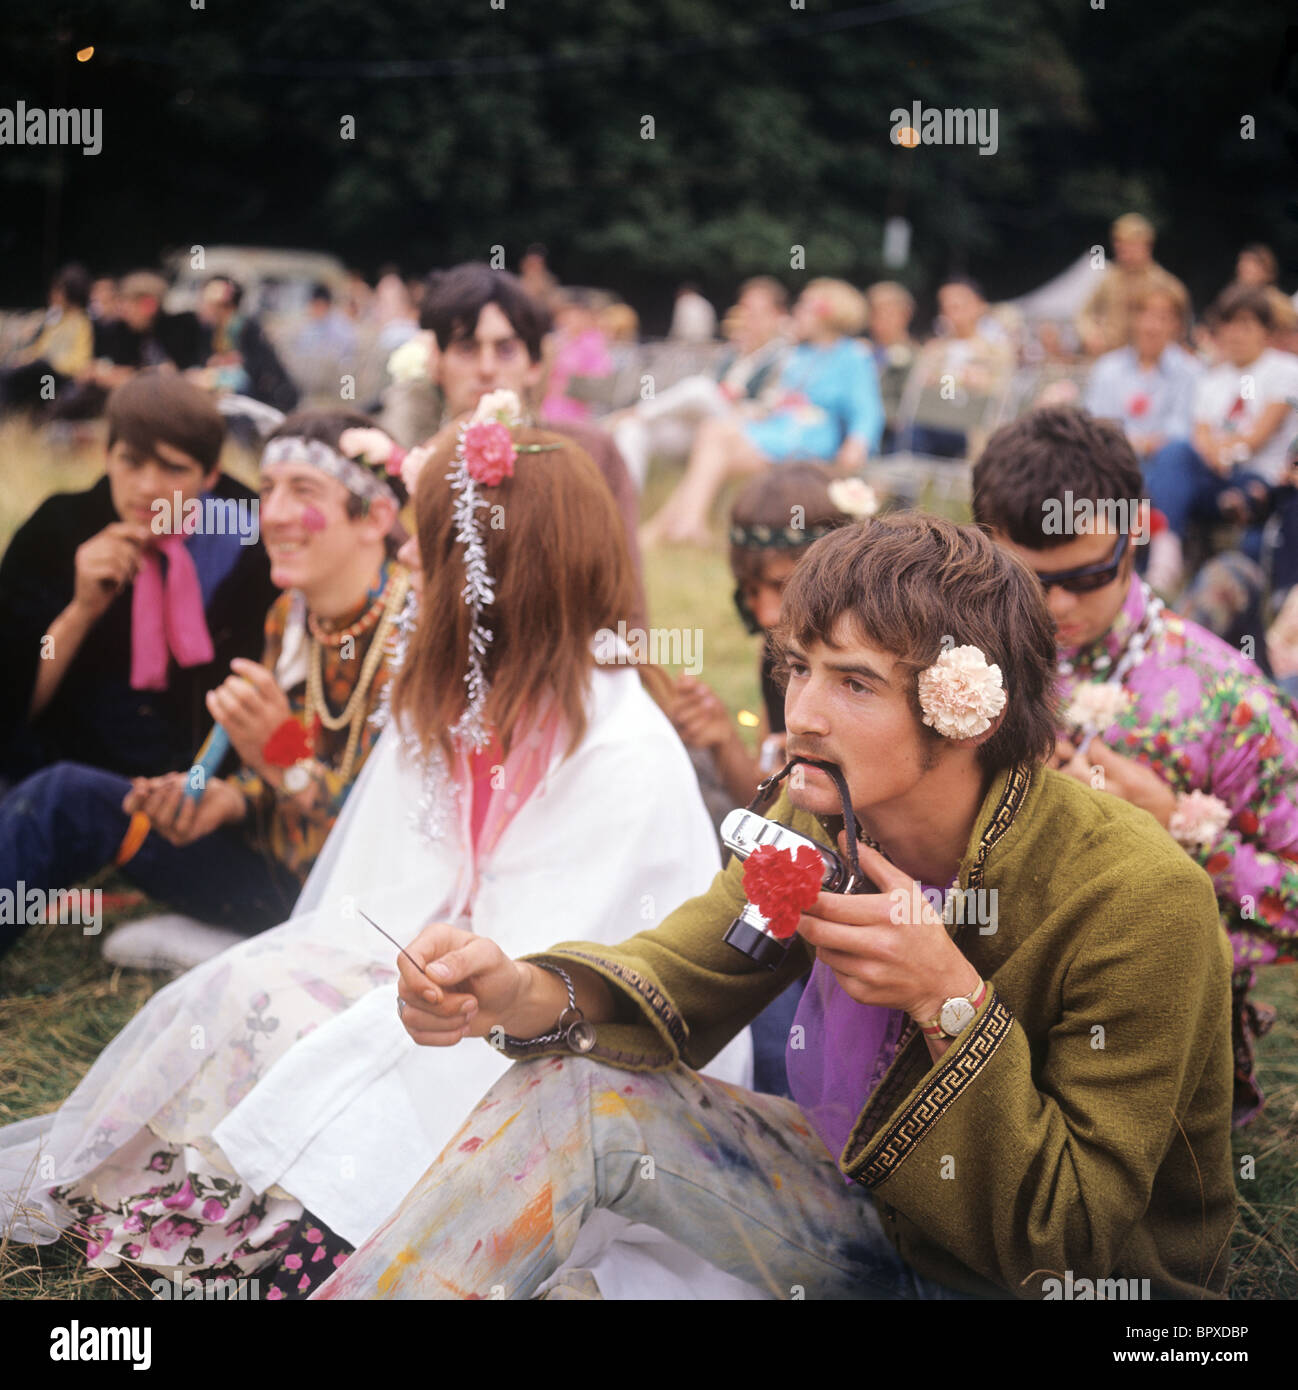 Hippy in London, 1967 - Stock Image